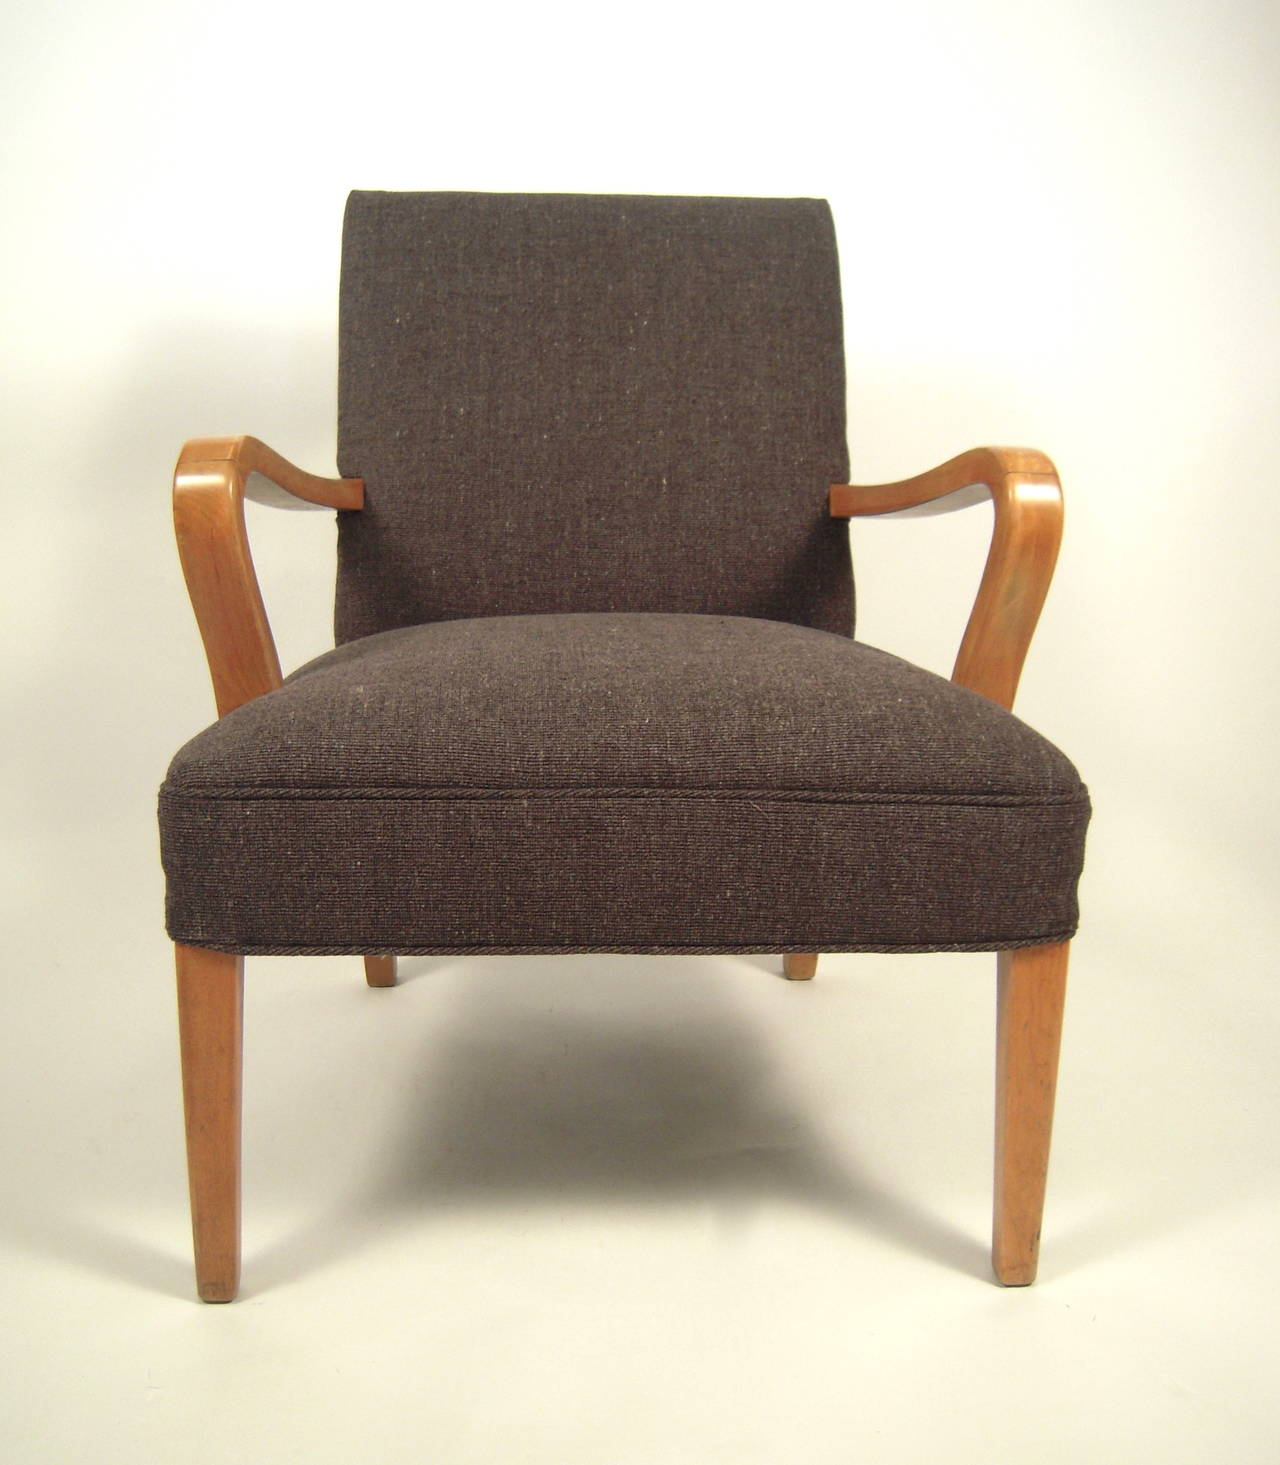 Mid century modern bentwood upholstered armchair at 1stdibs for Mid century modern armchairs